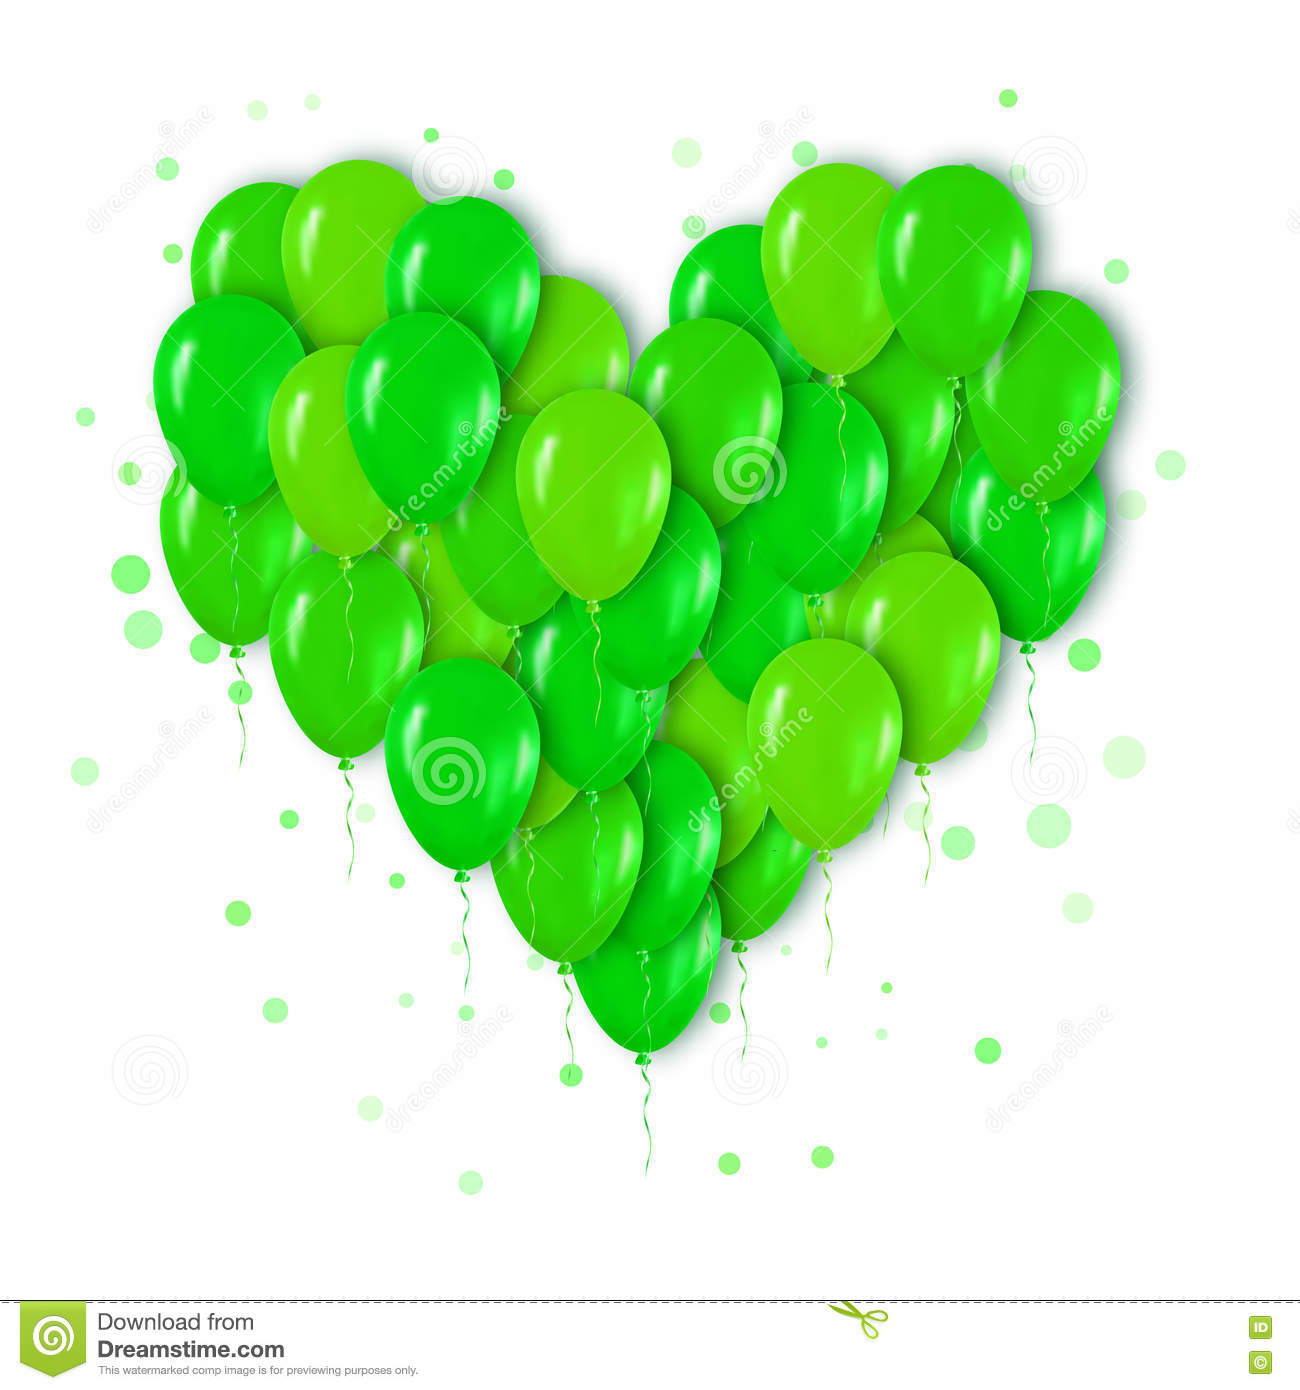 Realistic 3d Neon Green Bunch of Balloons Flying for Party